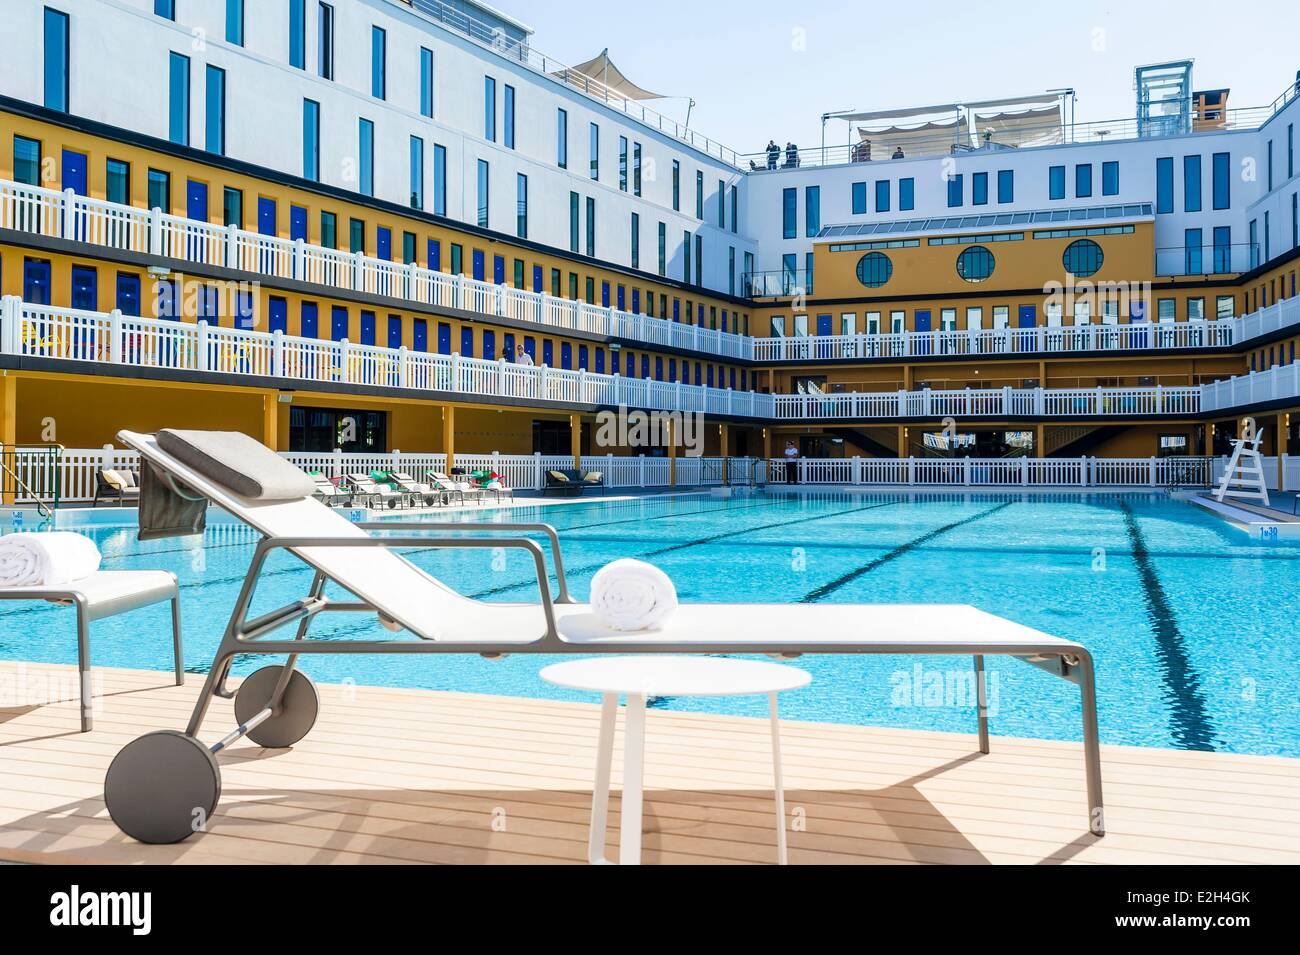 Hotel Molitor Piscine Piscine Molitor Paris Stock Photos Piscine Molitor Paris Stock